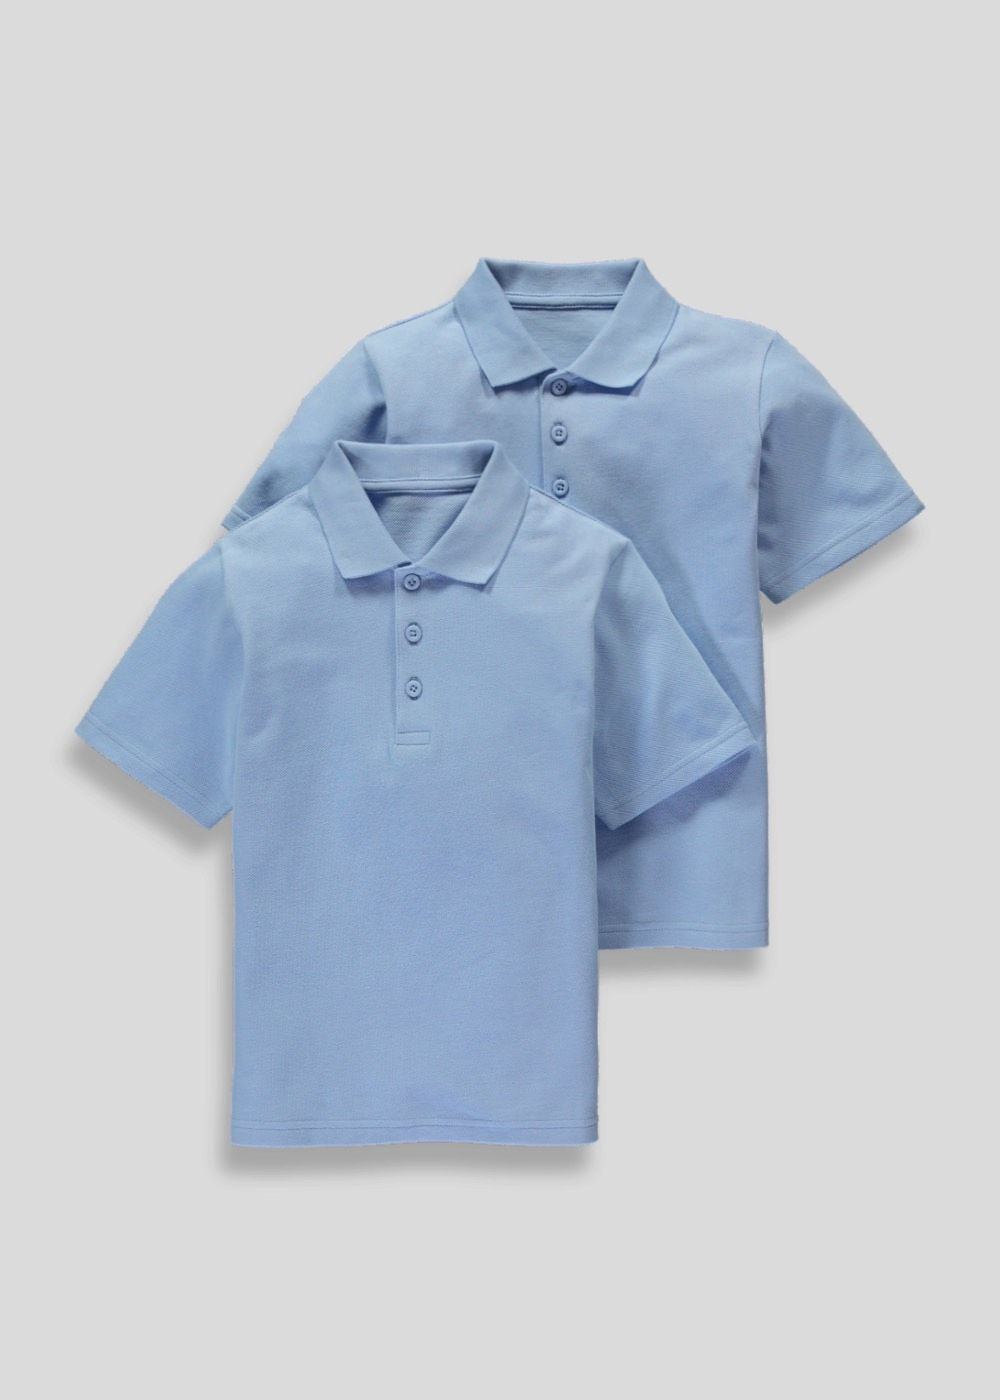 618dc85b2 School Polo Shirts, School Uniform Shop, Matalan, Shirt Blouses, Back To  School